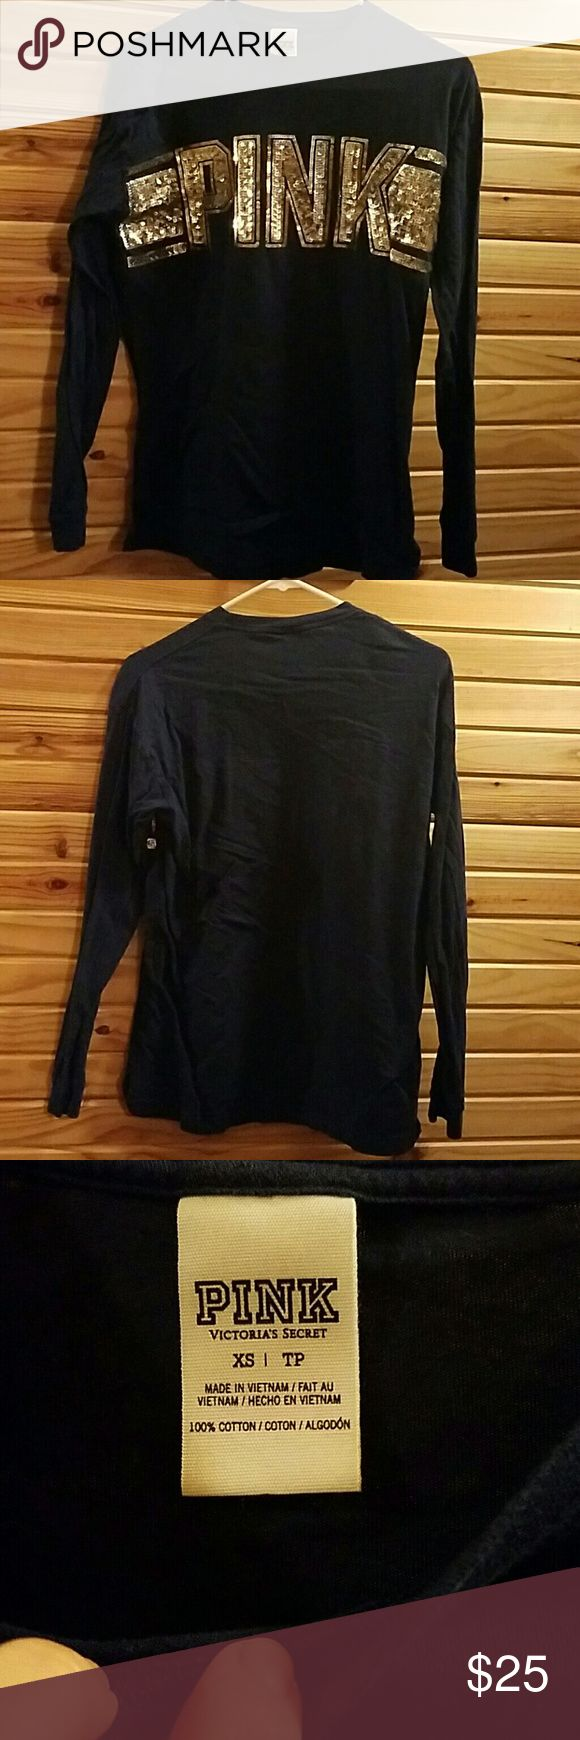 Pink Victoria Secret dark blue shirt size XS Dark blue and sparkly ladies! Worn once. Size xs Victoria's Secret Tops Tees - Long Sleeve